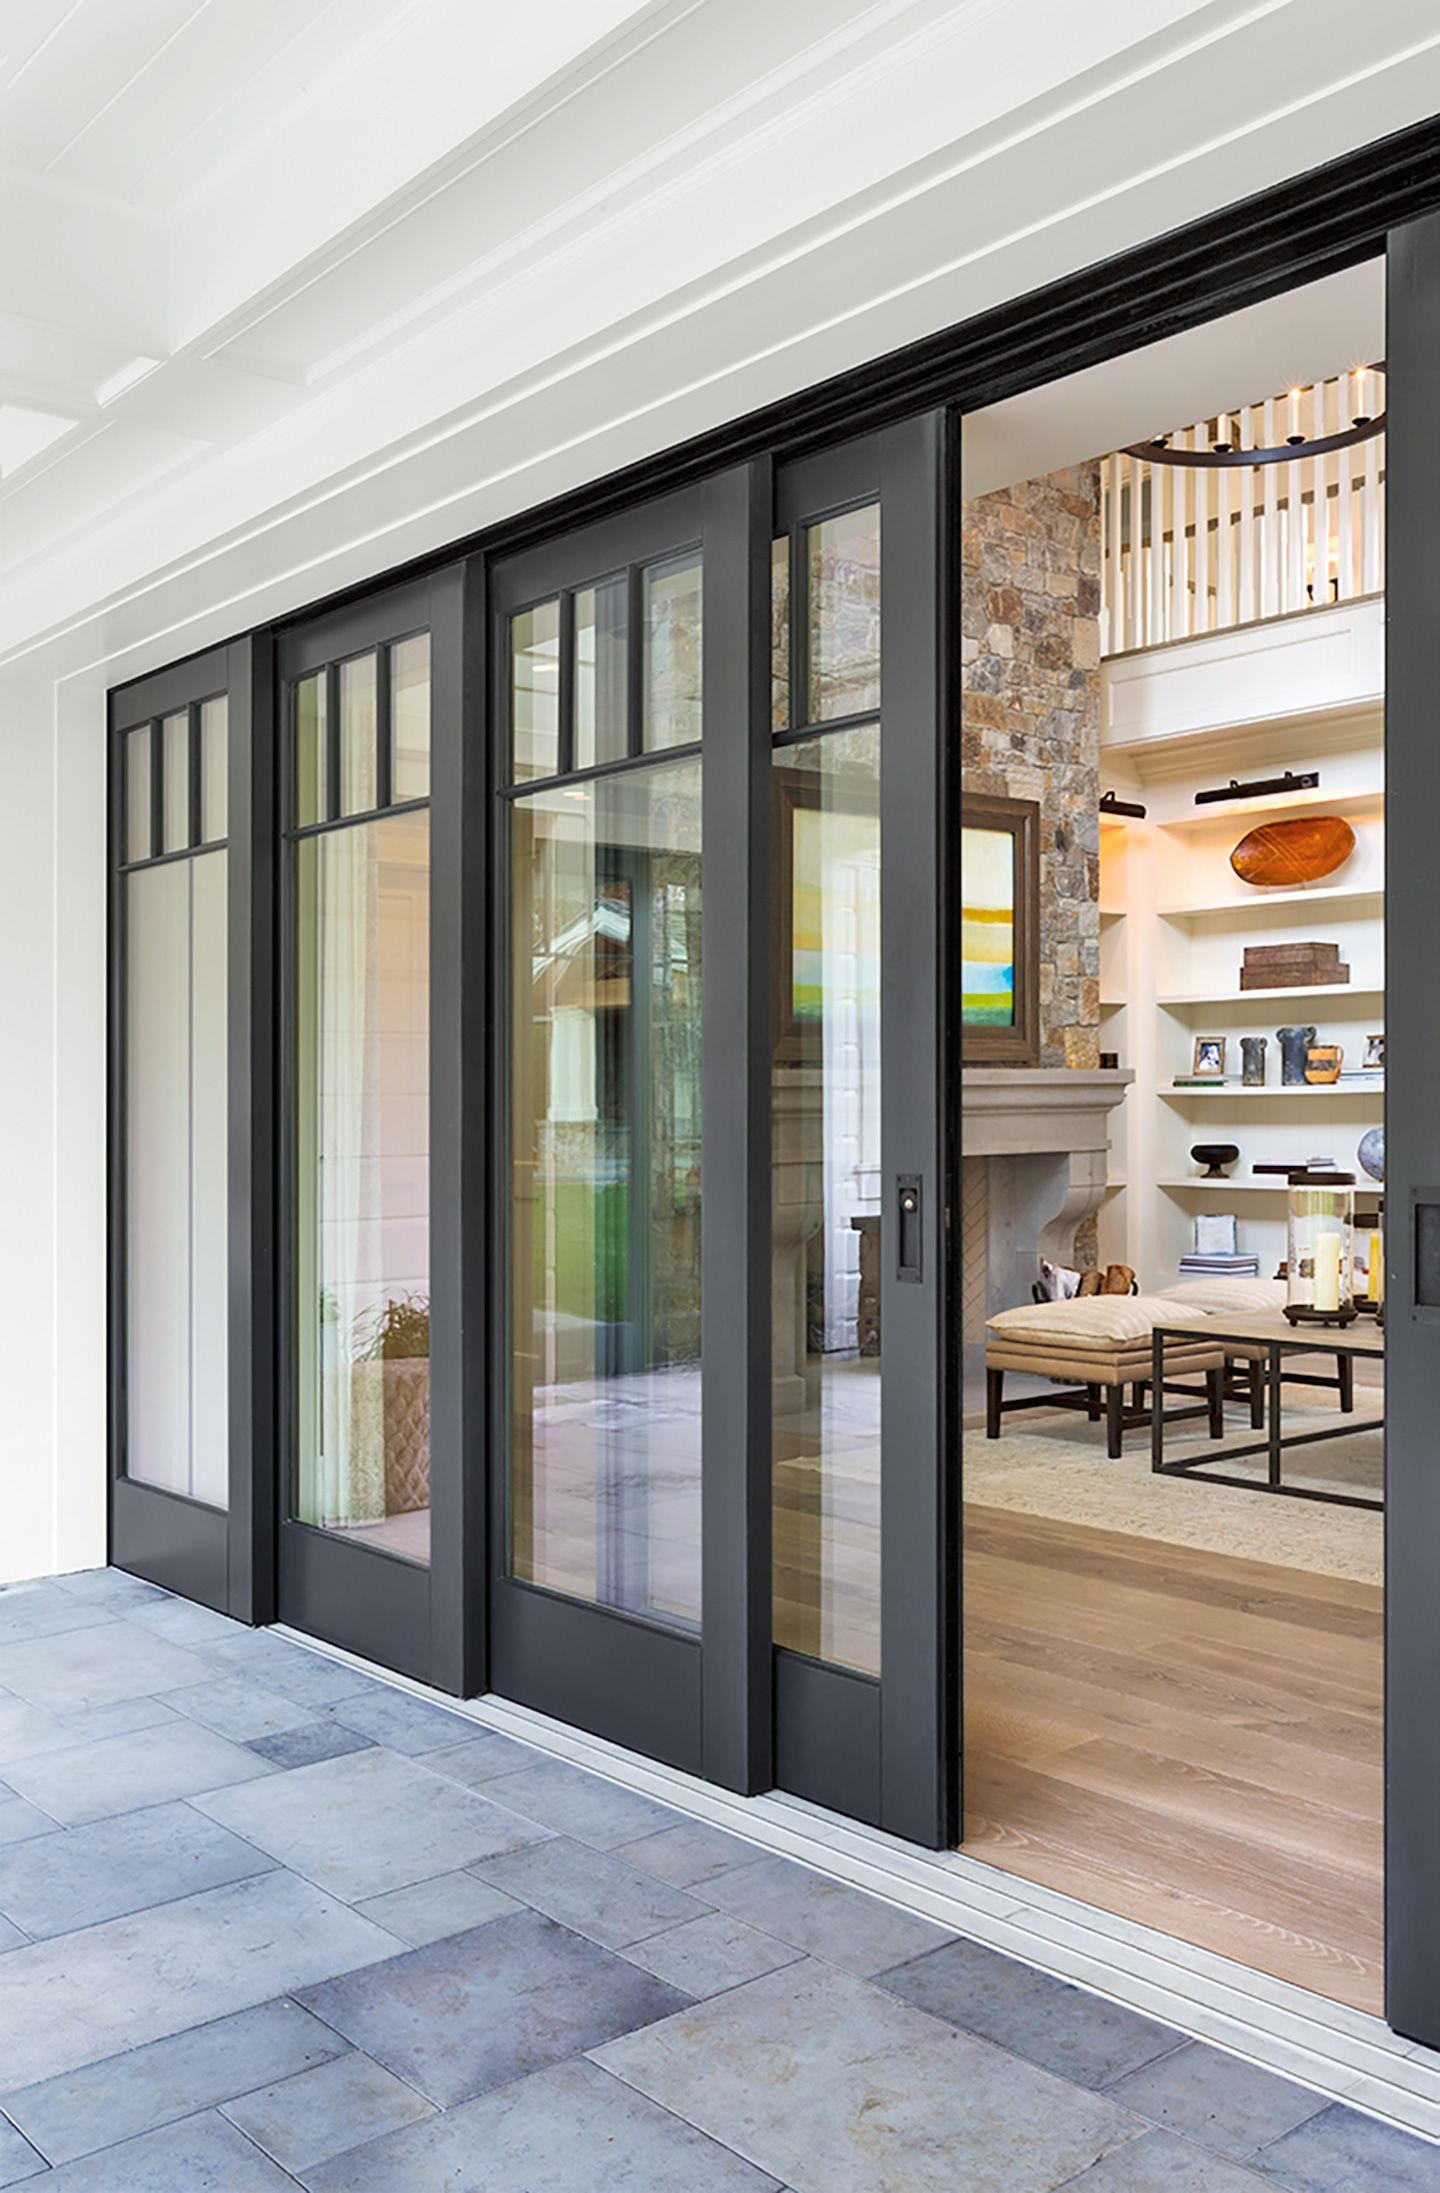 Door Types Telescoping Slider Sliding Doors Exterior Glass Doors Patio French Doors Exterior